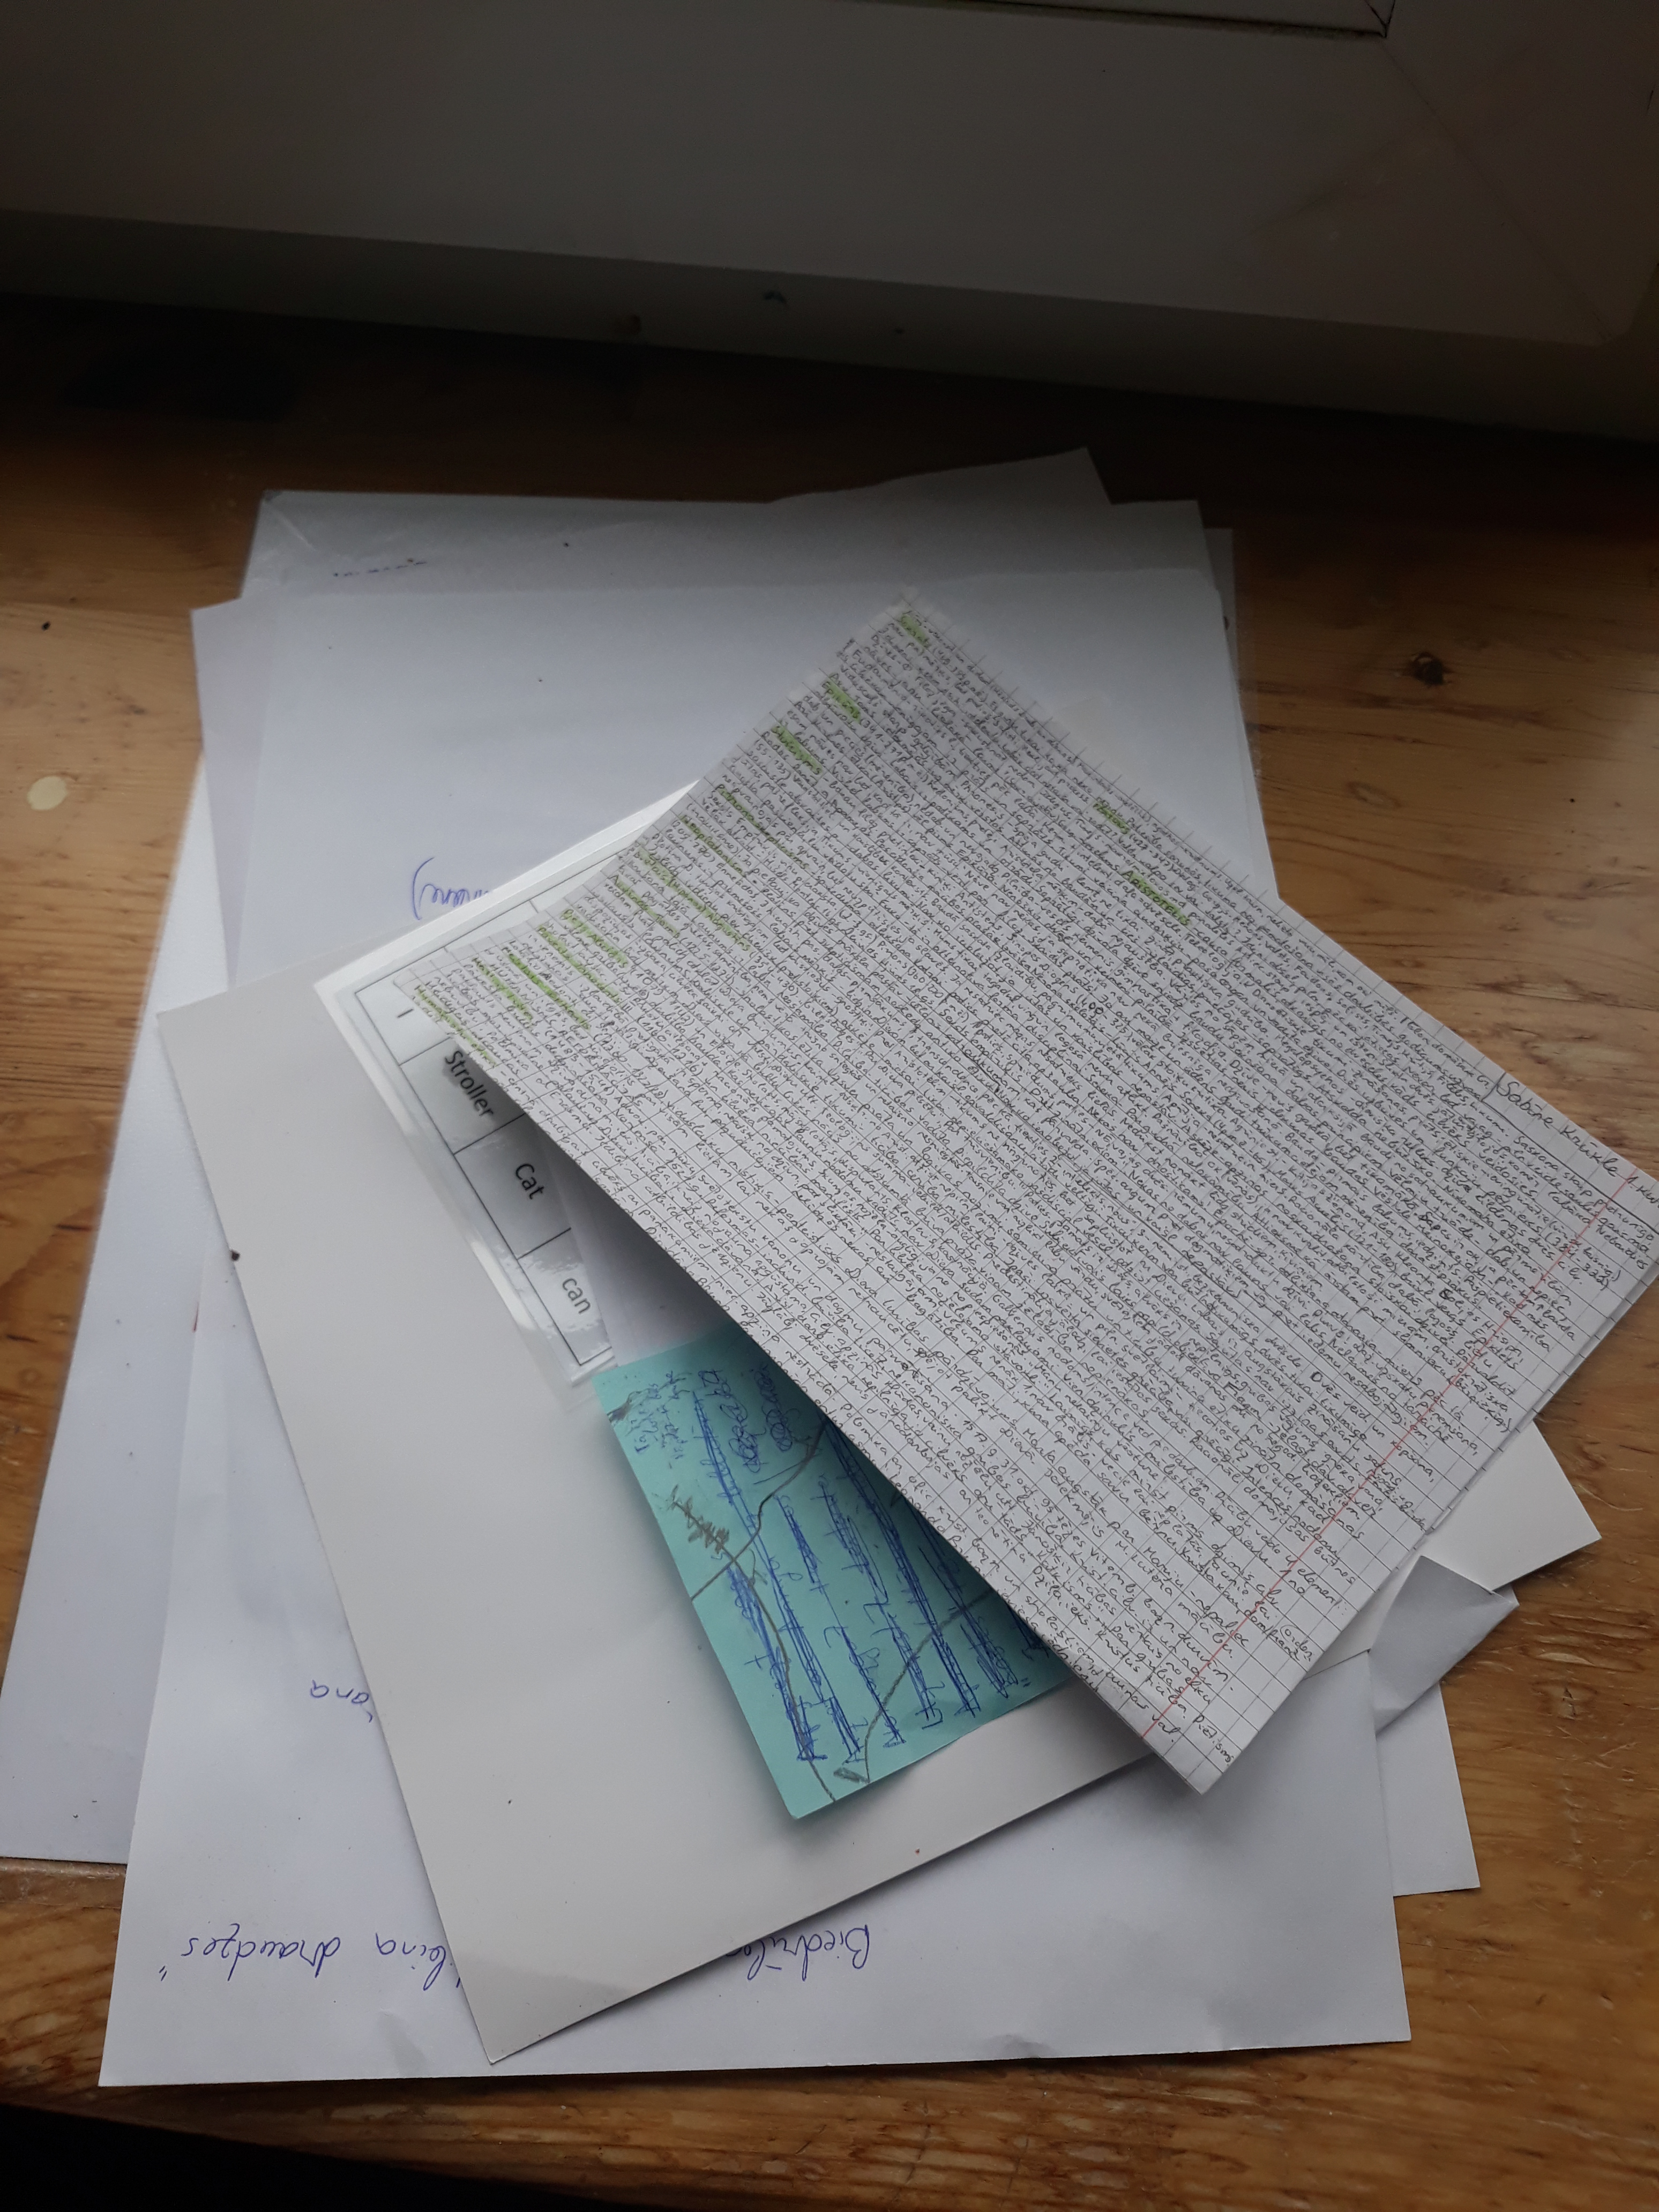 Picture of Old Notes and Notebooks